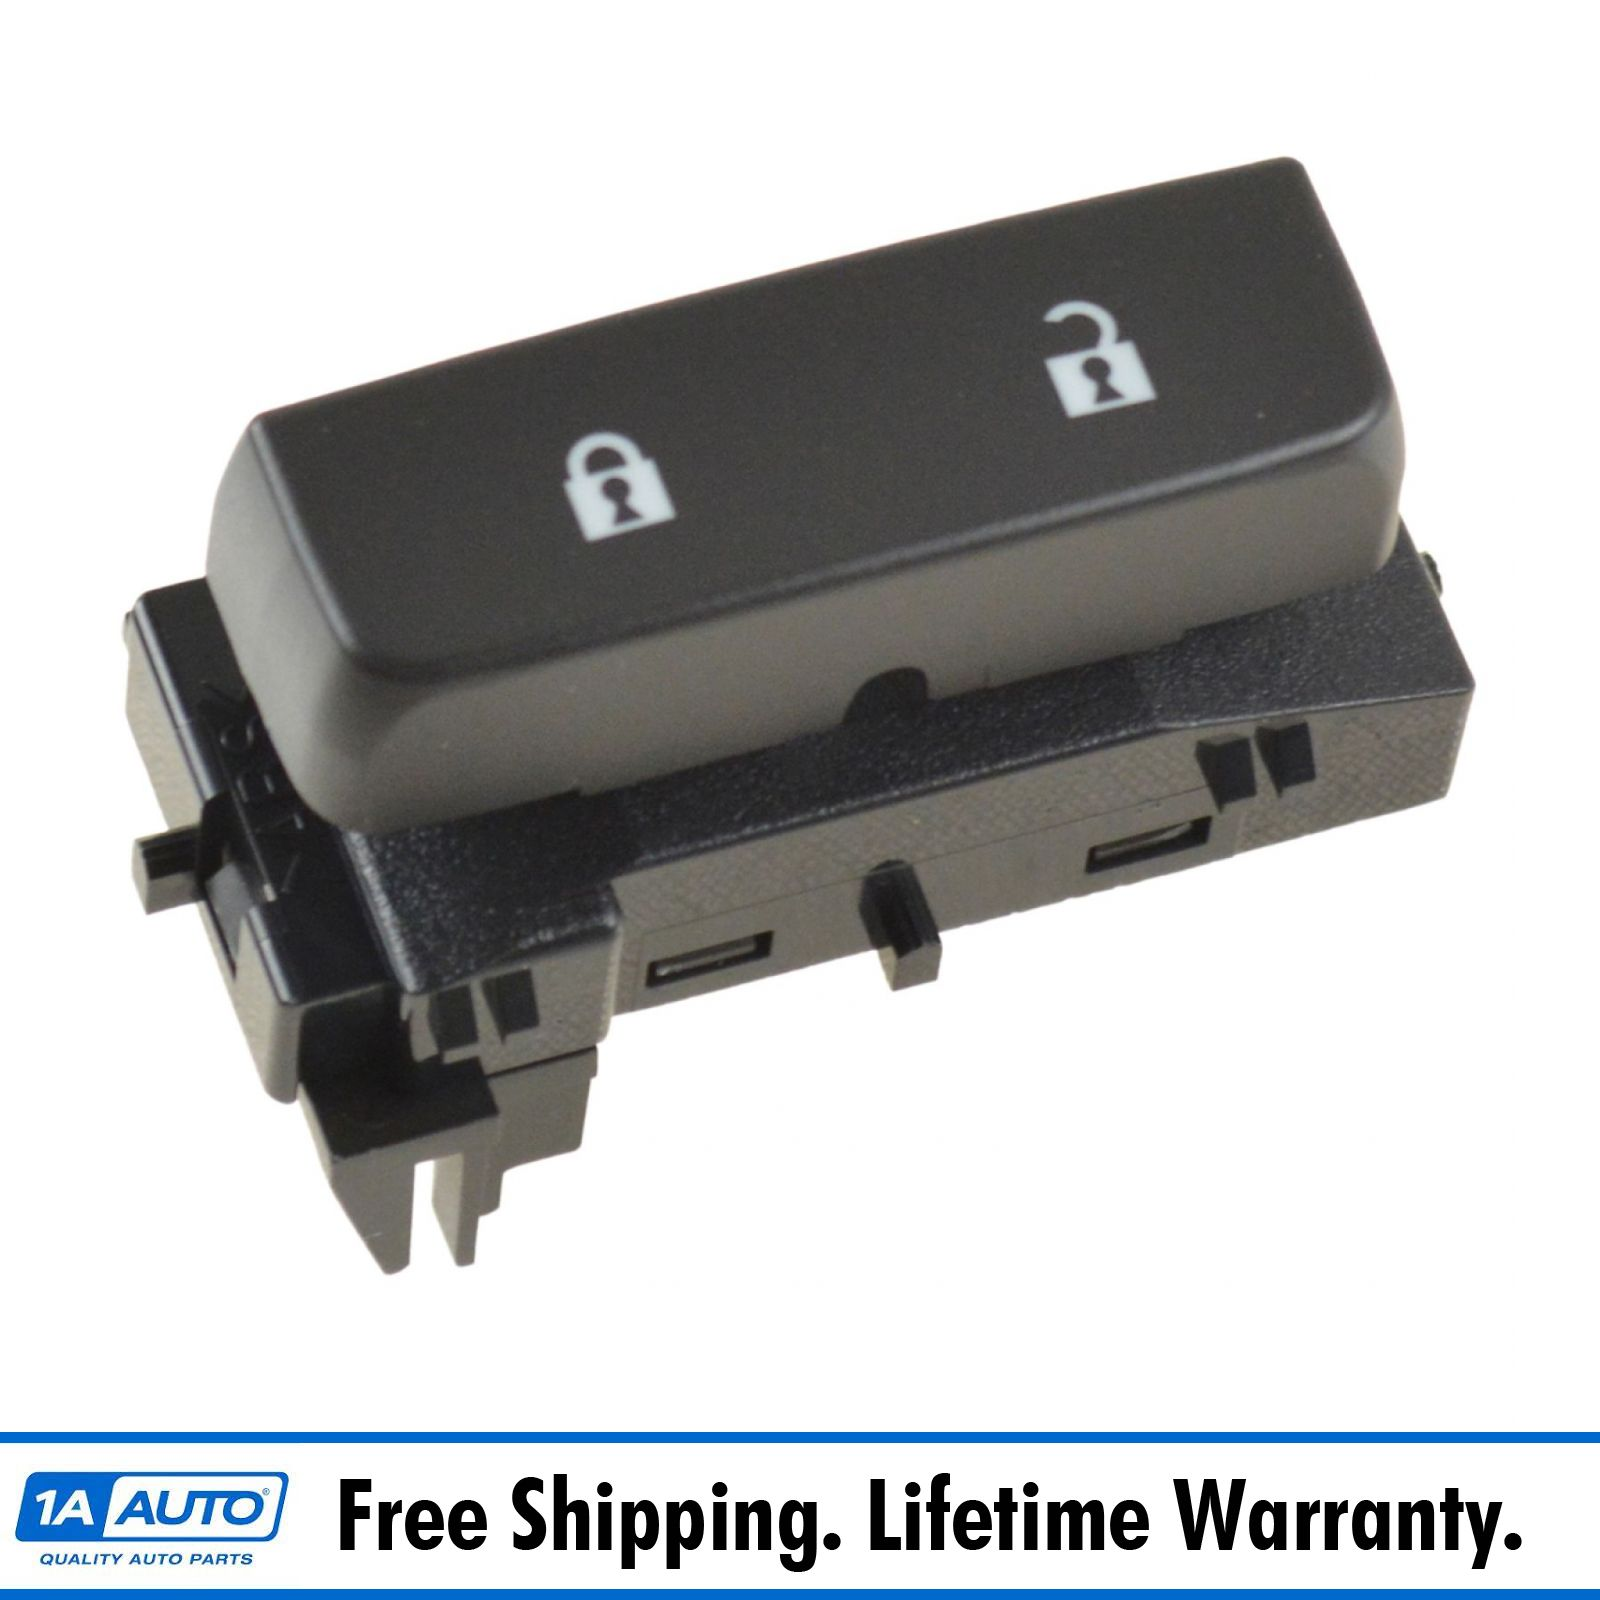 hight resolution of details about oem 15804094 power door lock switch front right rh for silverado sierra truck